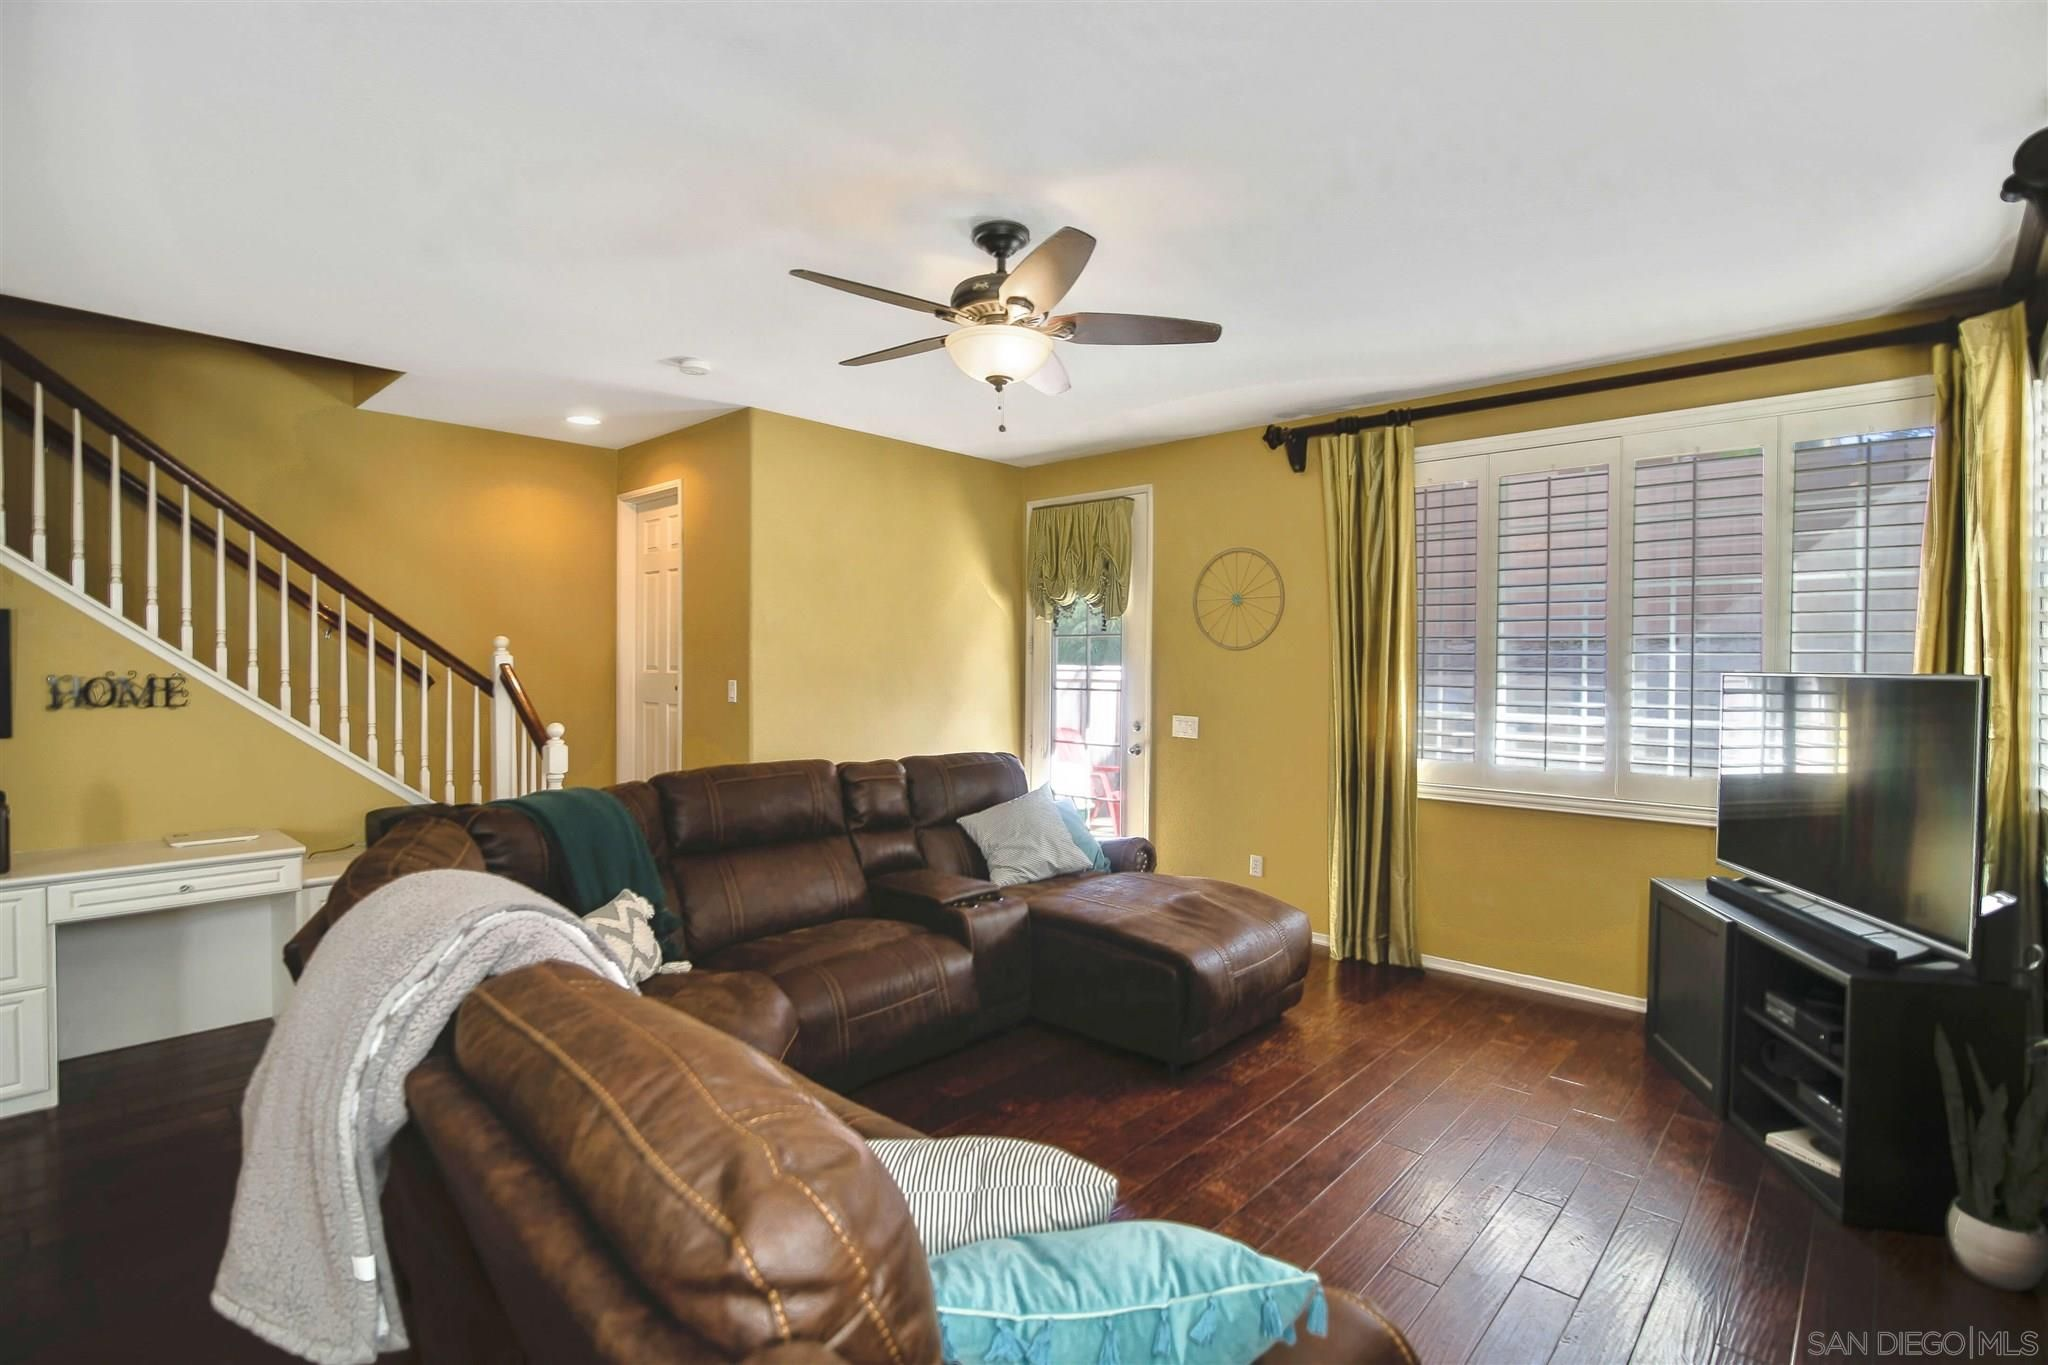 Main Photo: CHULA VISTA Condo for sale : 3 bedrooms : 1850 Toulouse Dr